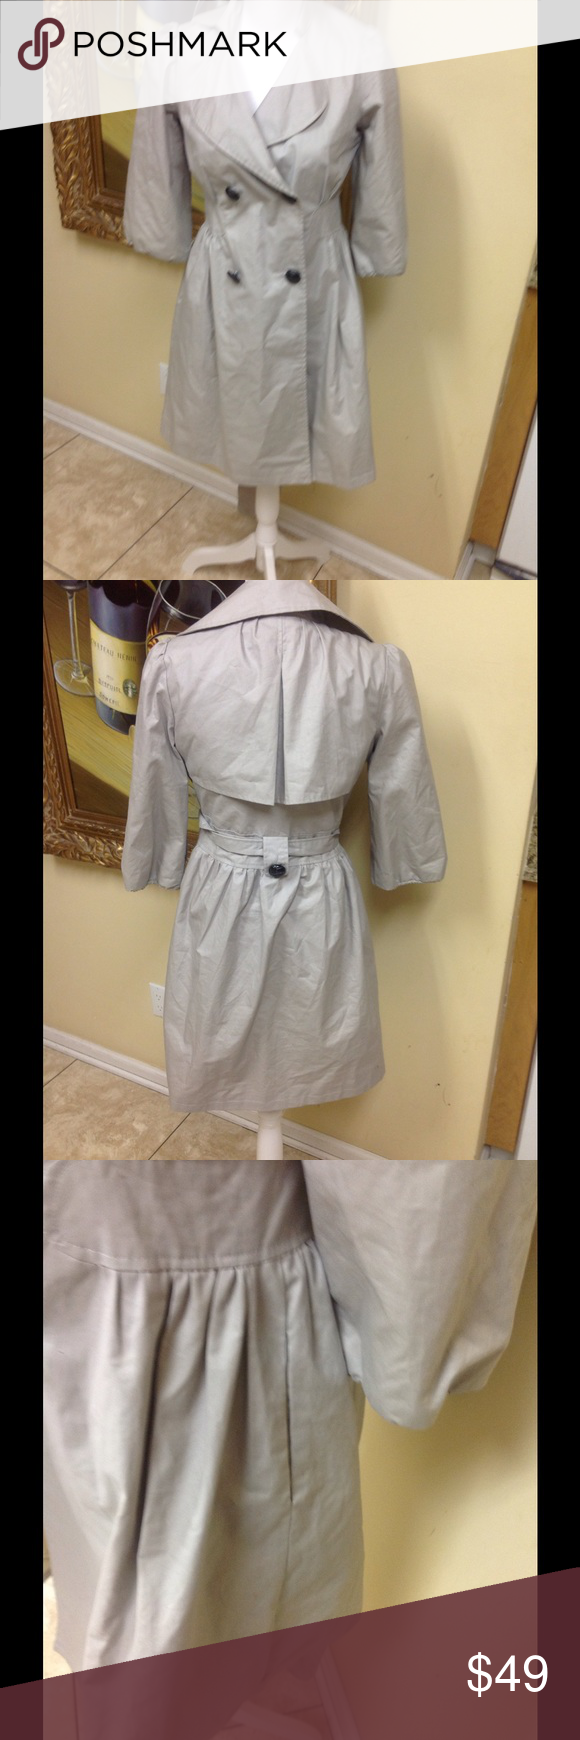 Romeo & Juliet Jacket Size S Adorable tan belted jacket by designer Romeo & Juliet size S. Pleated front and sides pleats, 2 outer pockets, great design, low price. Questions feel free to contact me. Romeo & Juliet Couture Jackets & Coats